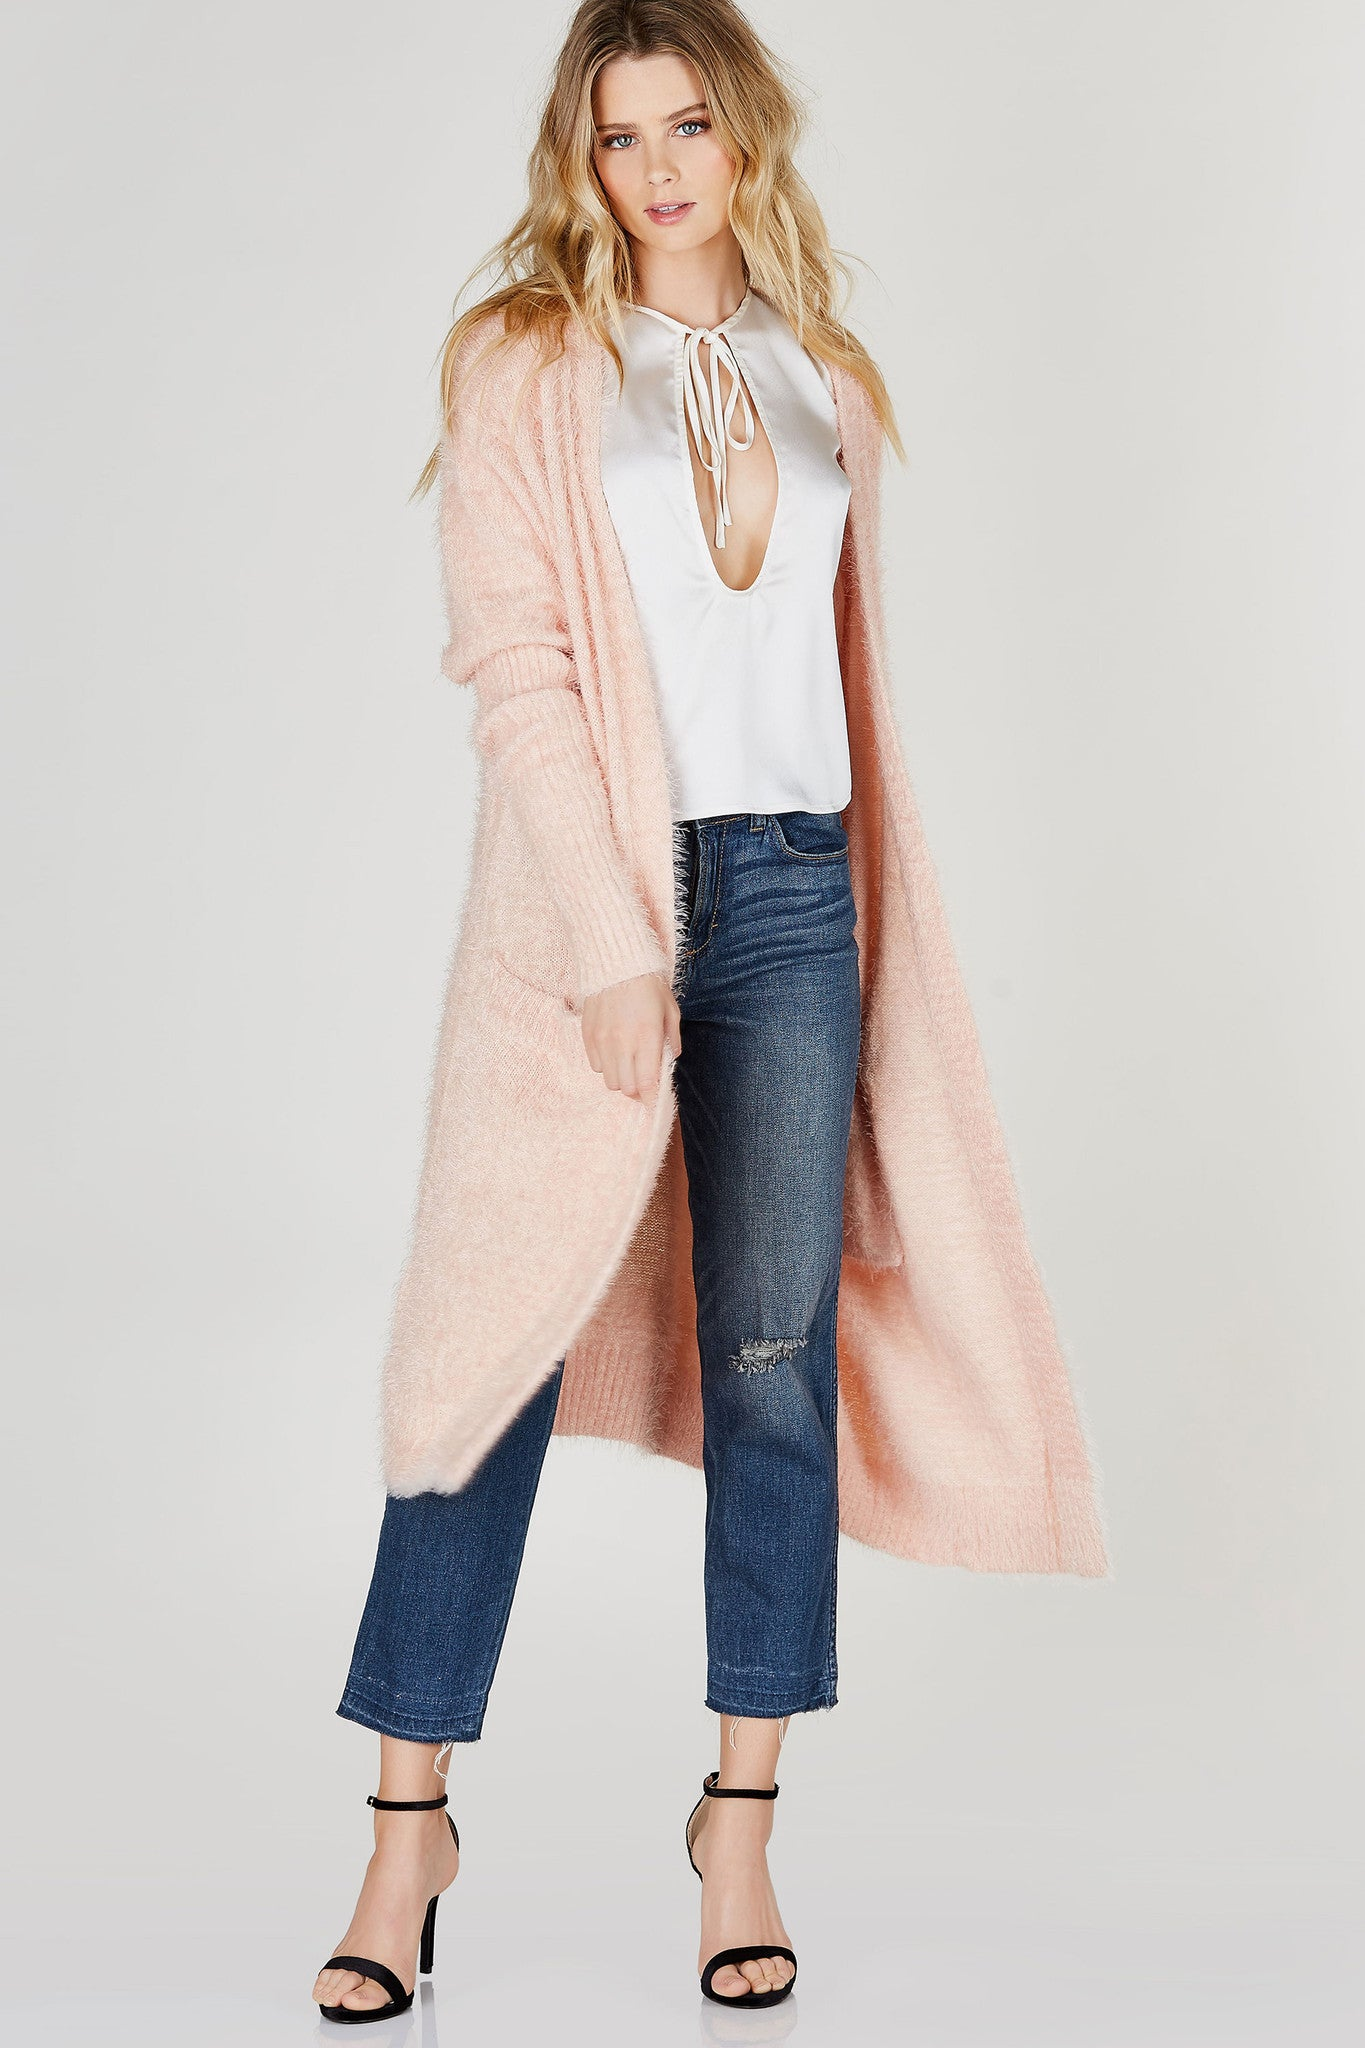 An amazingly soft and cozy cardigan with a long slouchy fit. Open front with ribbed sleeves for a slim fit. Functional pockets in front, straight hem all around. Throw on over a basic top and classic denims for a back-to-school outfit.